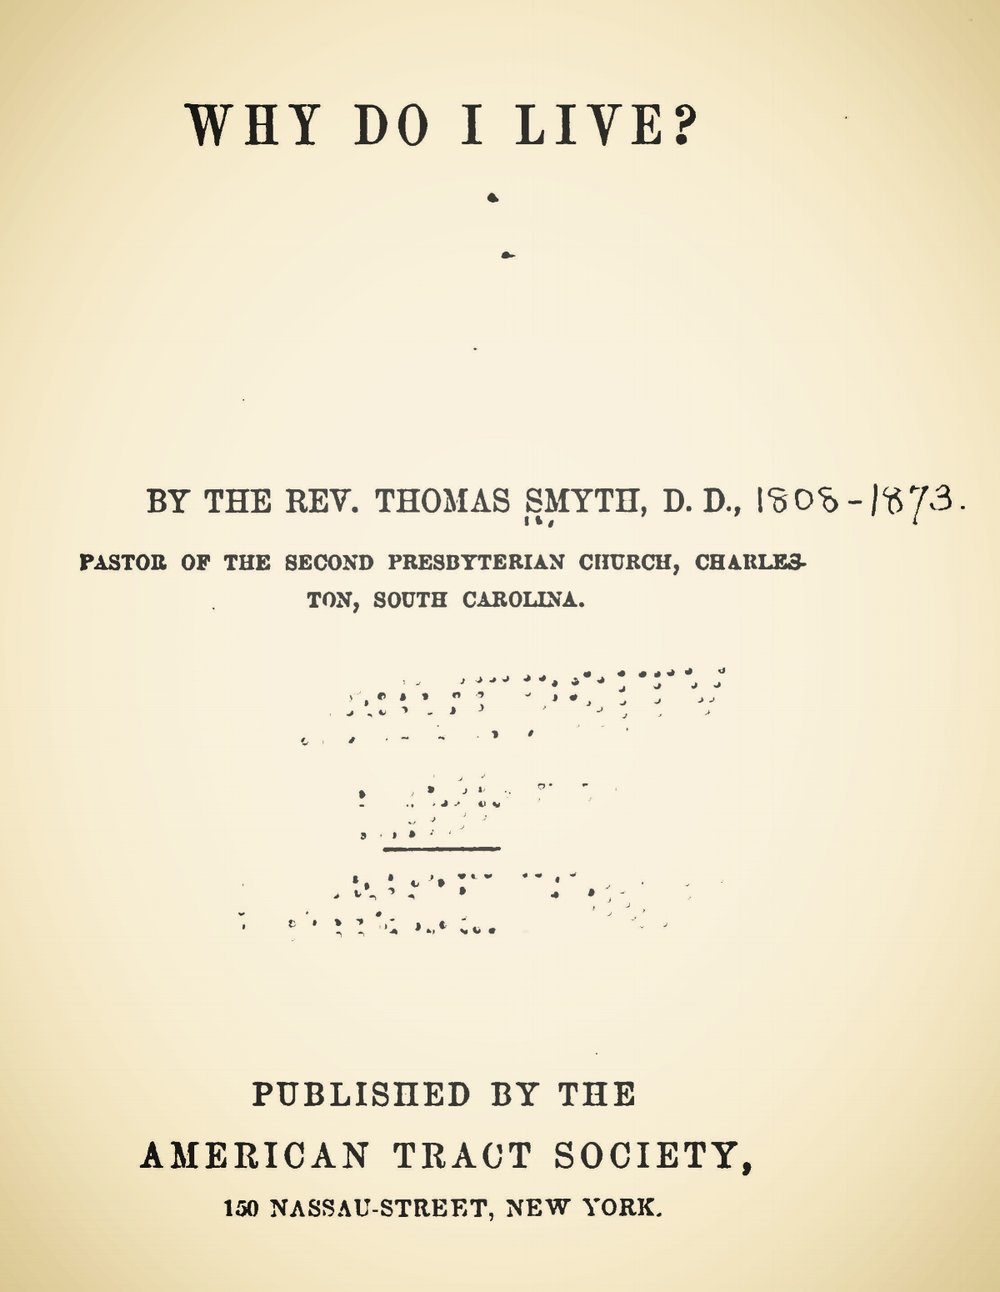 Smyth, Thomas, Why Do I Live Title Page.jpg